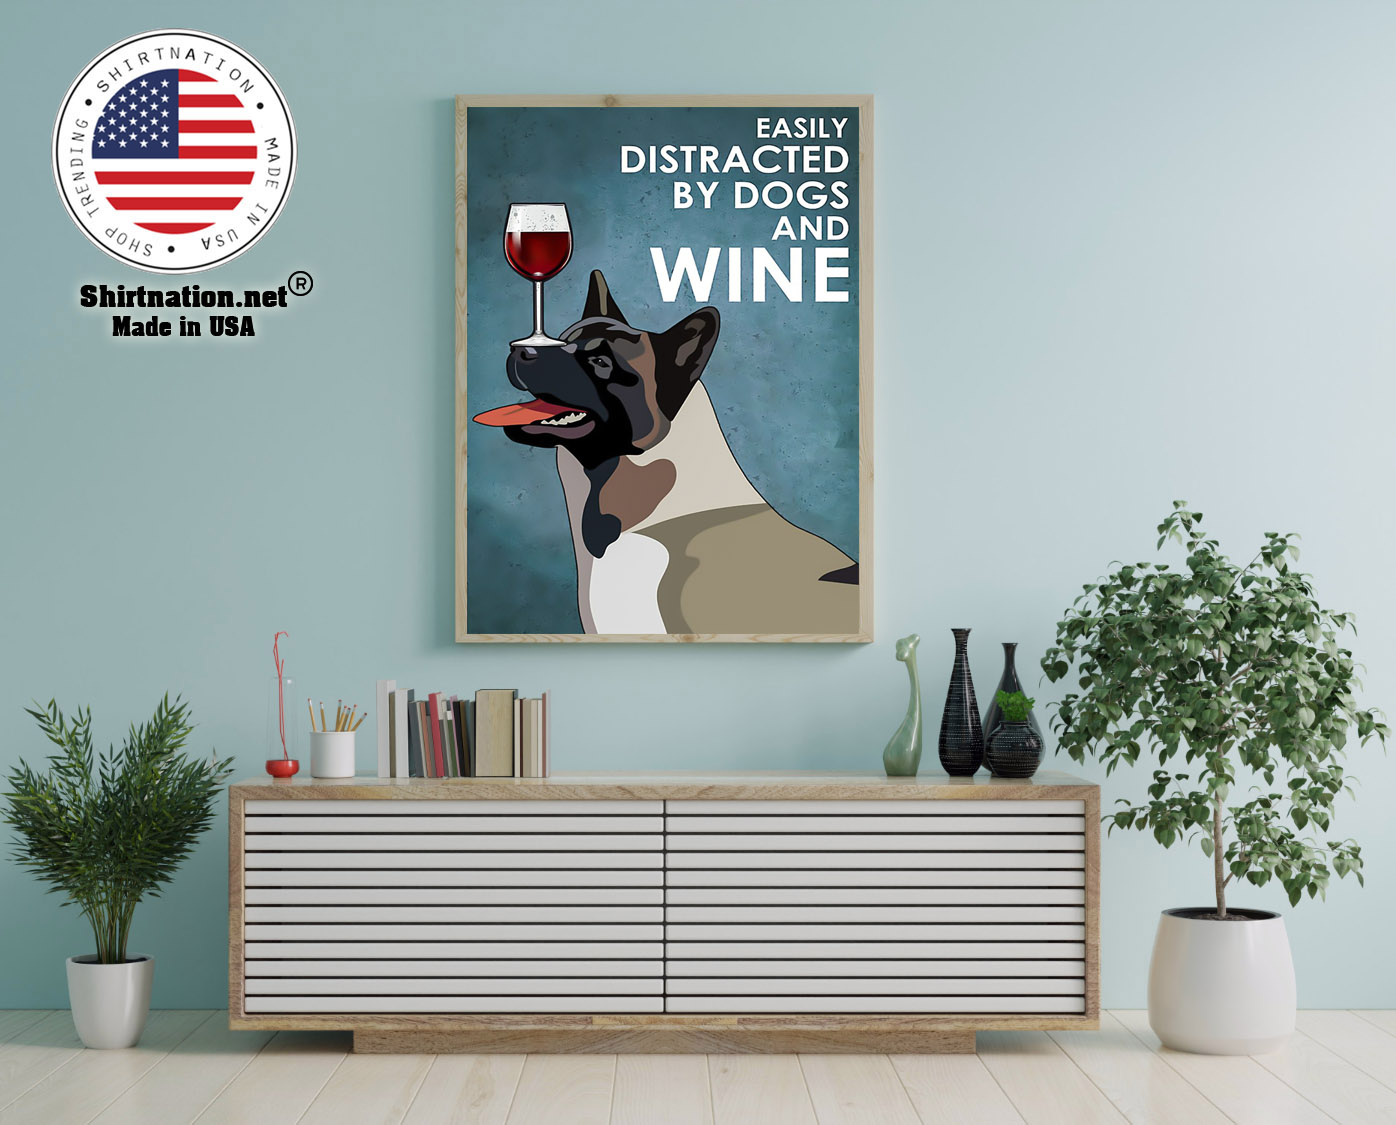 Dog american akita easily distracted by dogs and wine poster